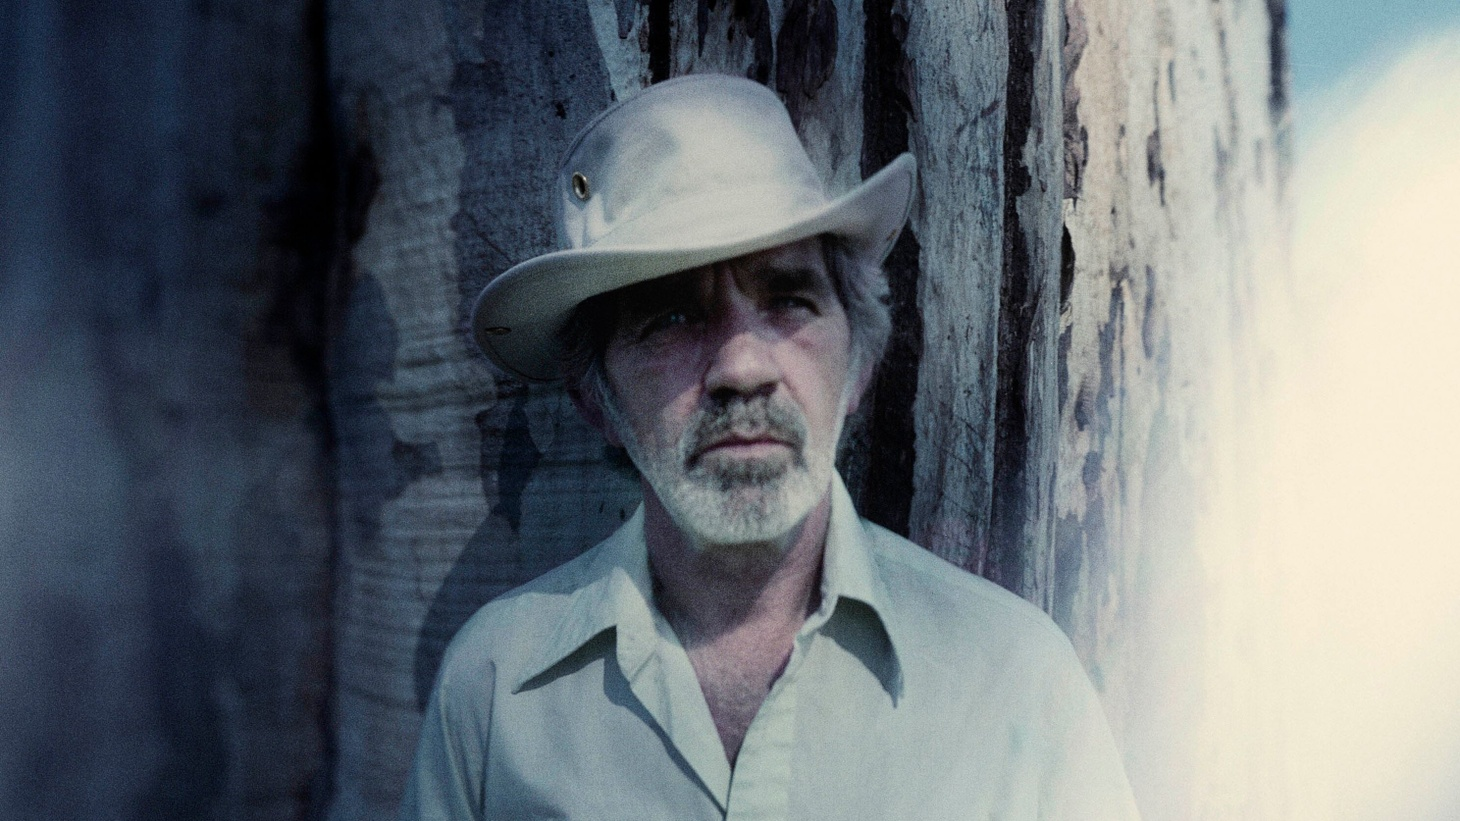 """Eric Clapton, Jerry Garcia, and Wire all covered """"After Midnight,"""" and Beck has sung """"Magnolia"""" on stage at his shows. Both of these songs are from the beloved songwriter and guitarist JJ Cale, who left behind a vibrant legacy."""